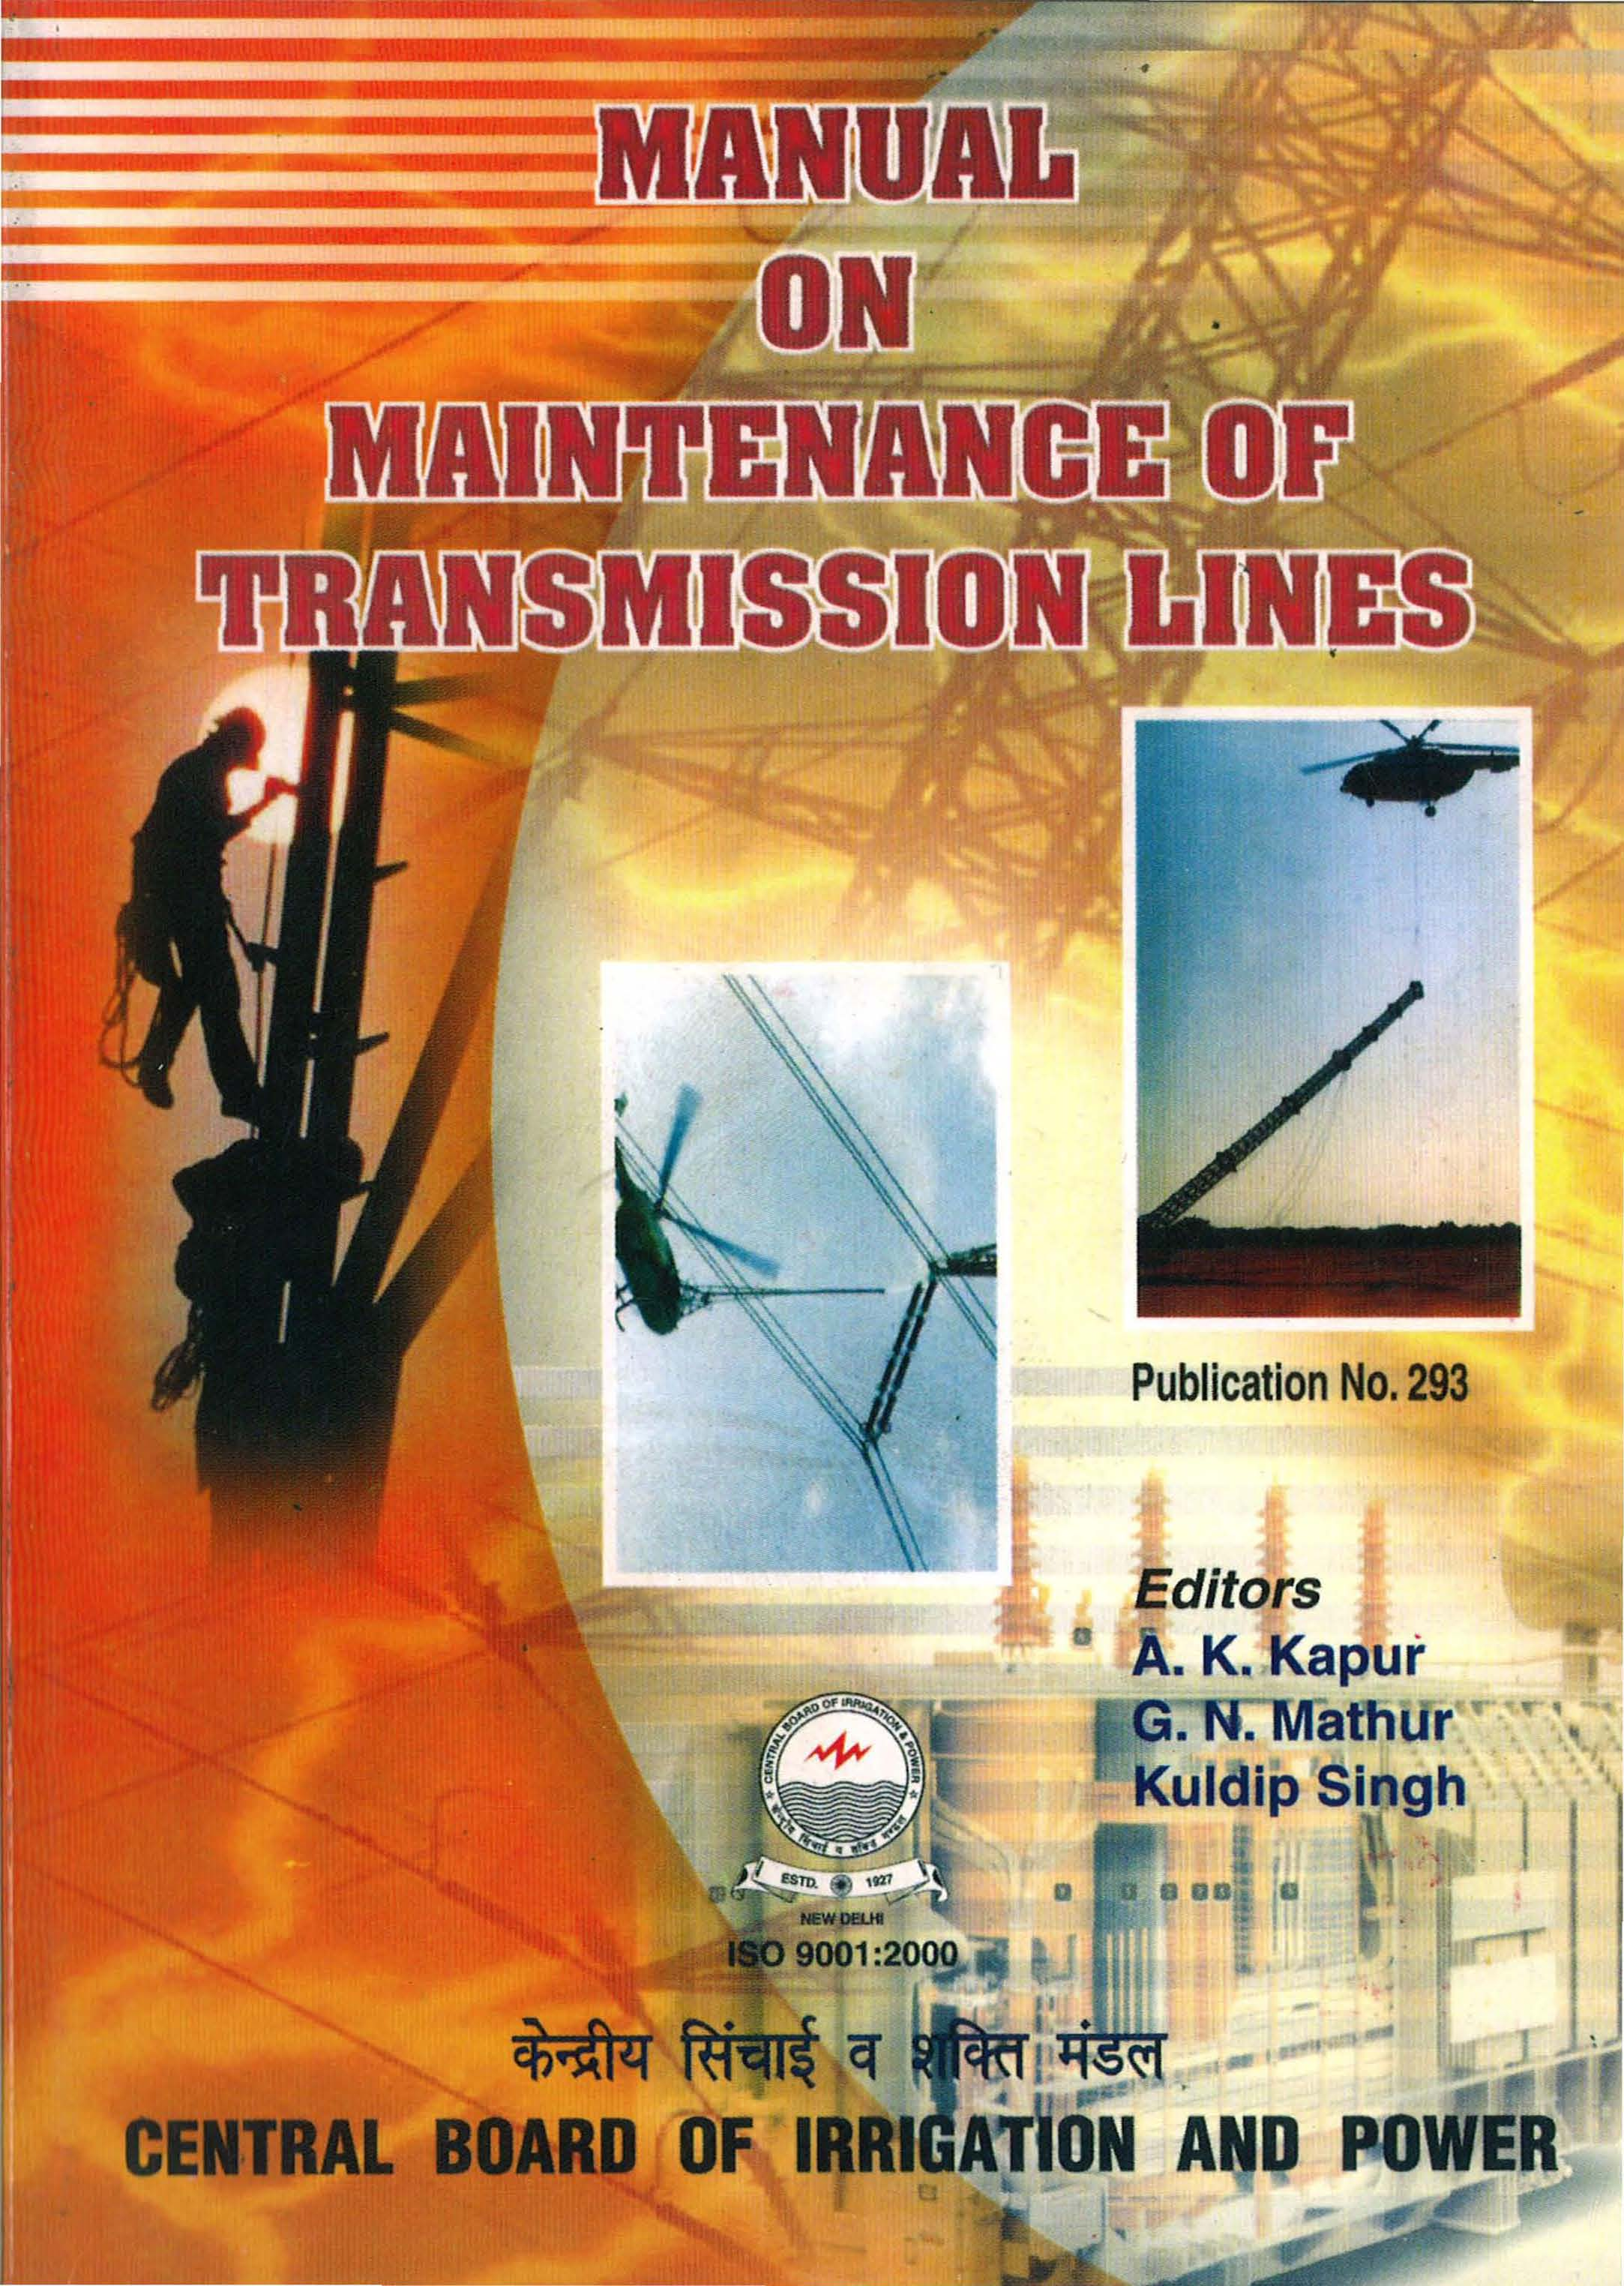 Book Title: Manual on Maintenance of Transmission Lines